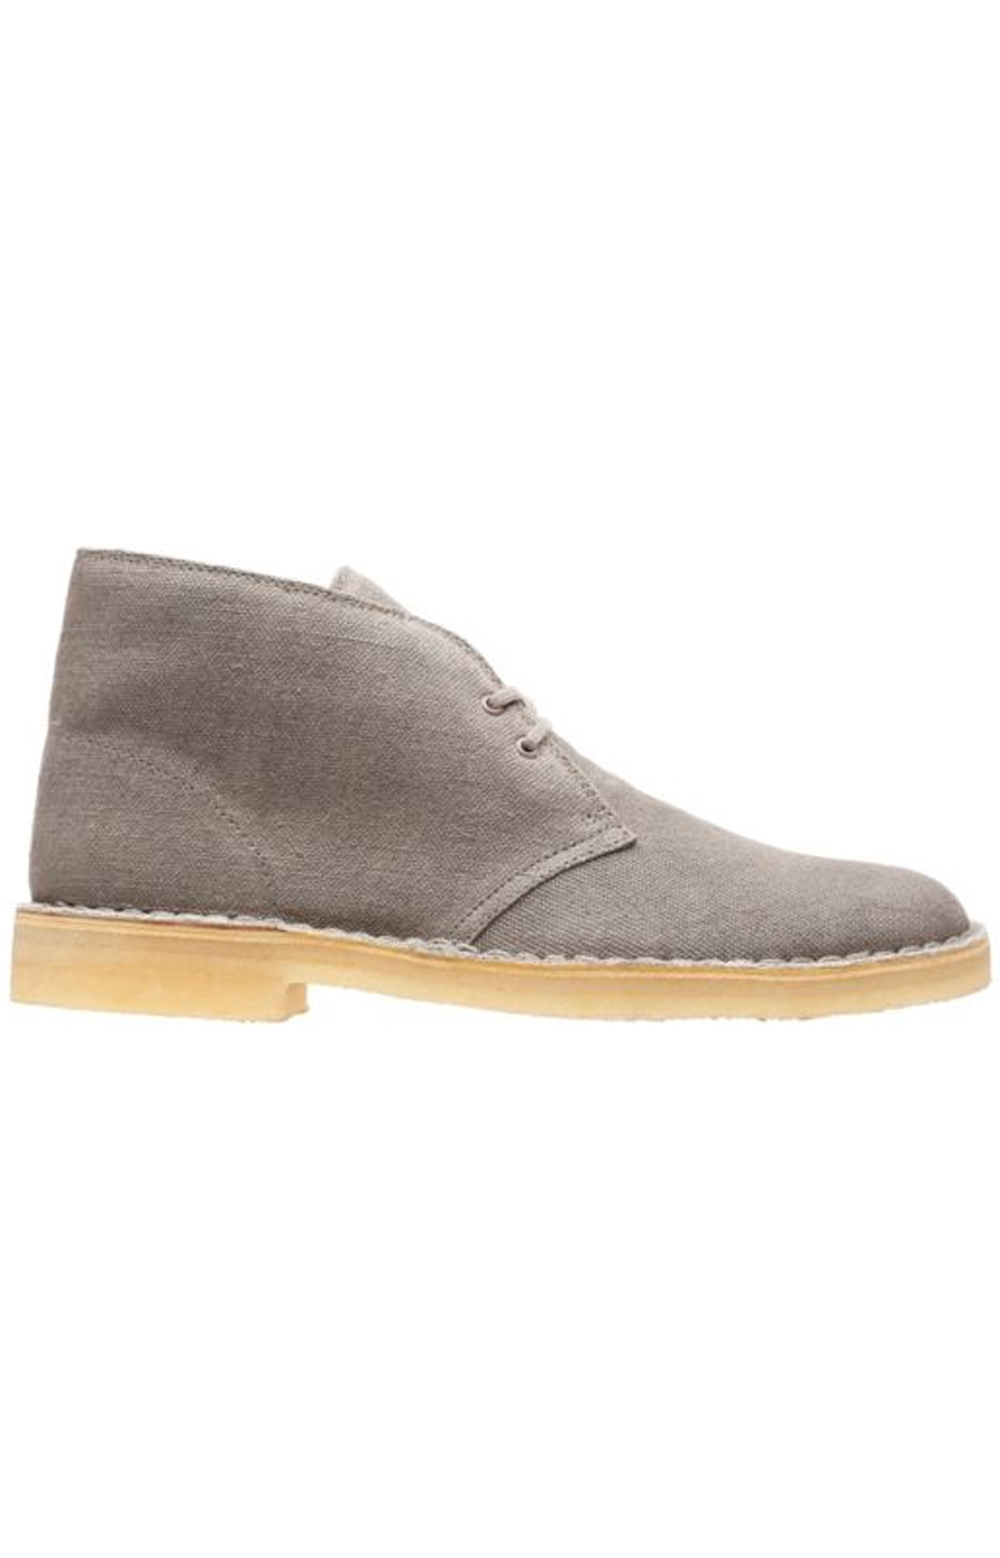 (26131983) Desert Boot - Taupe Canvas